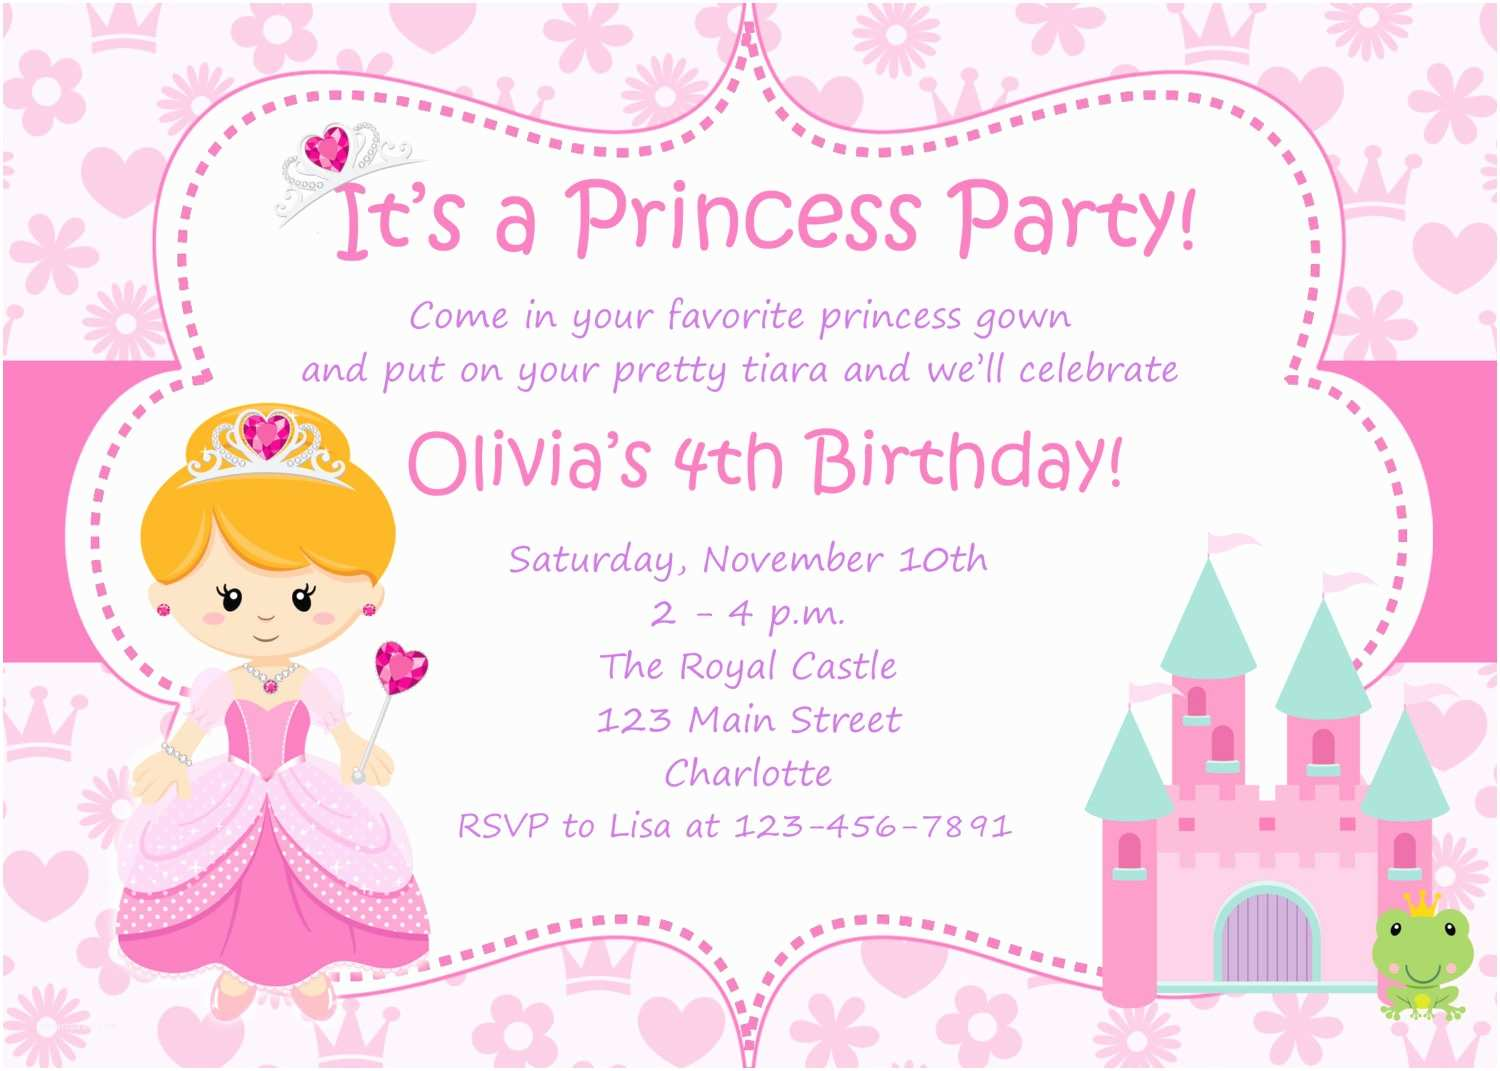 Party Invitations Online Free Birthday Invitations Templates Printable